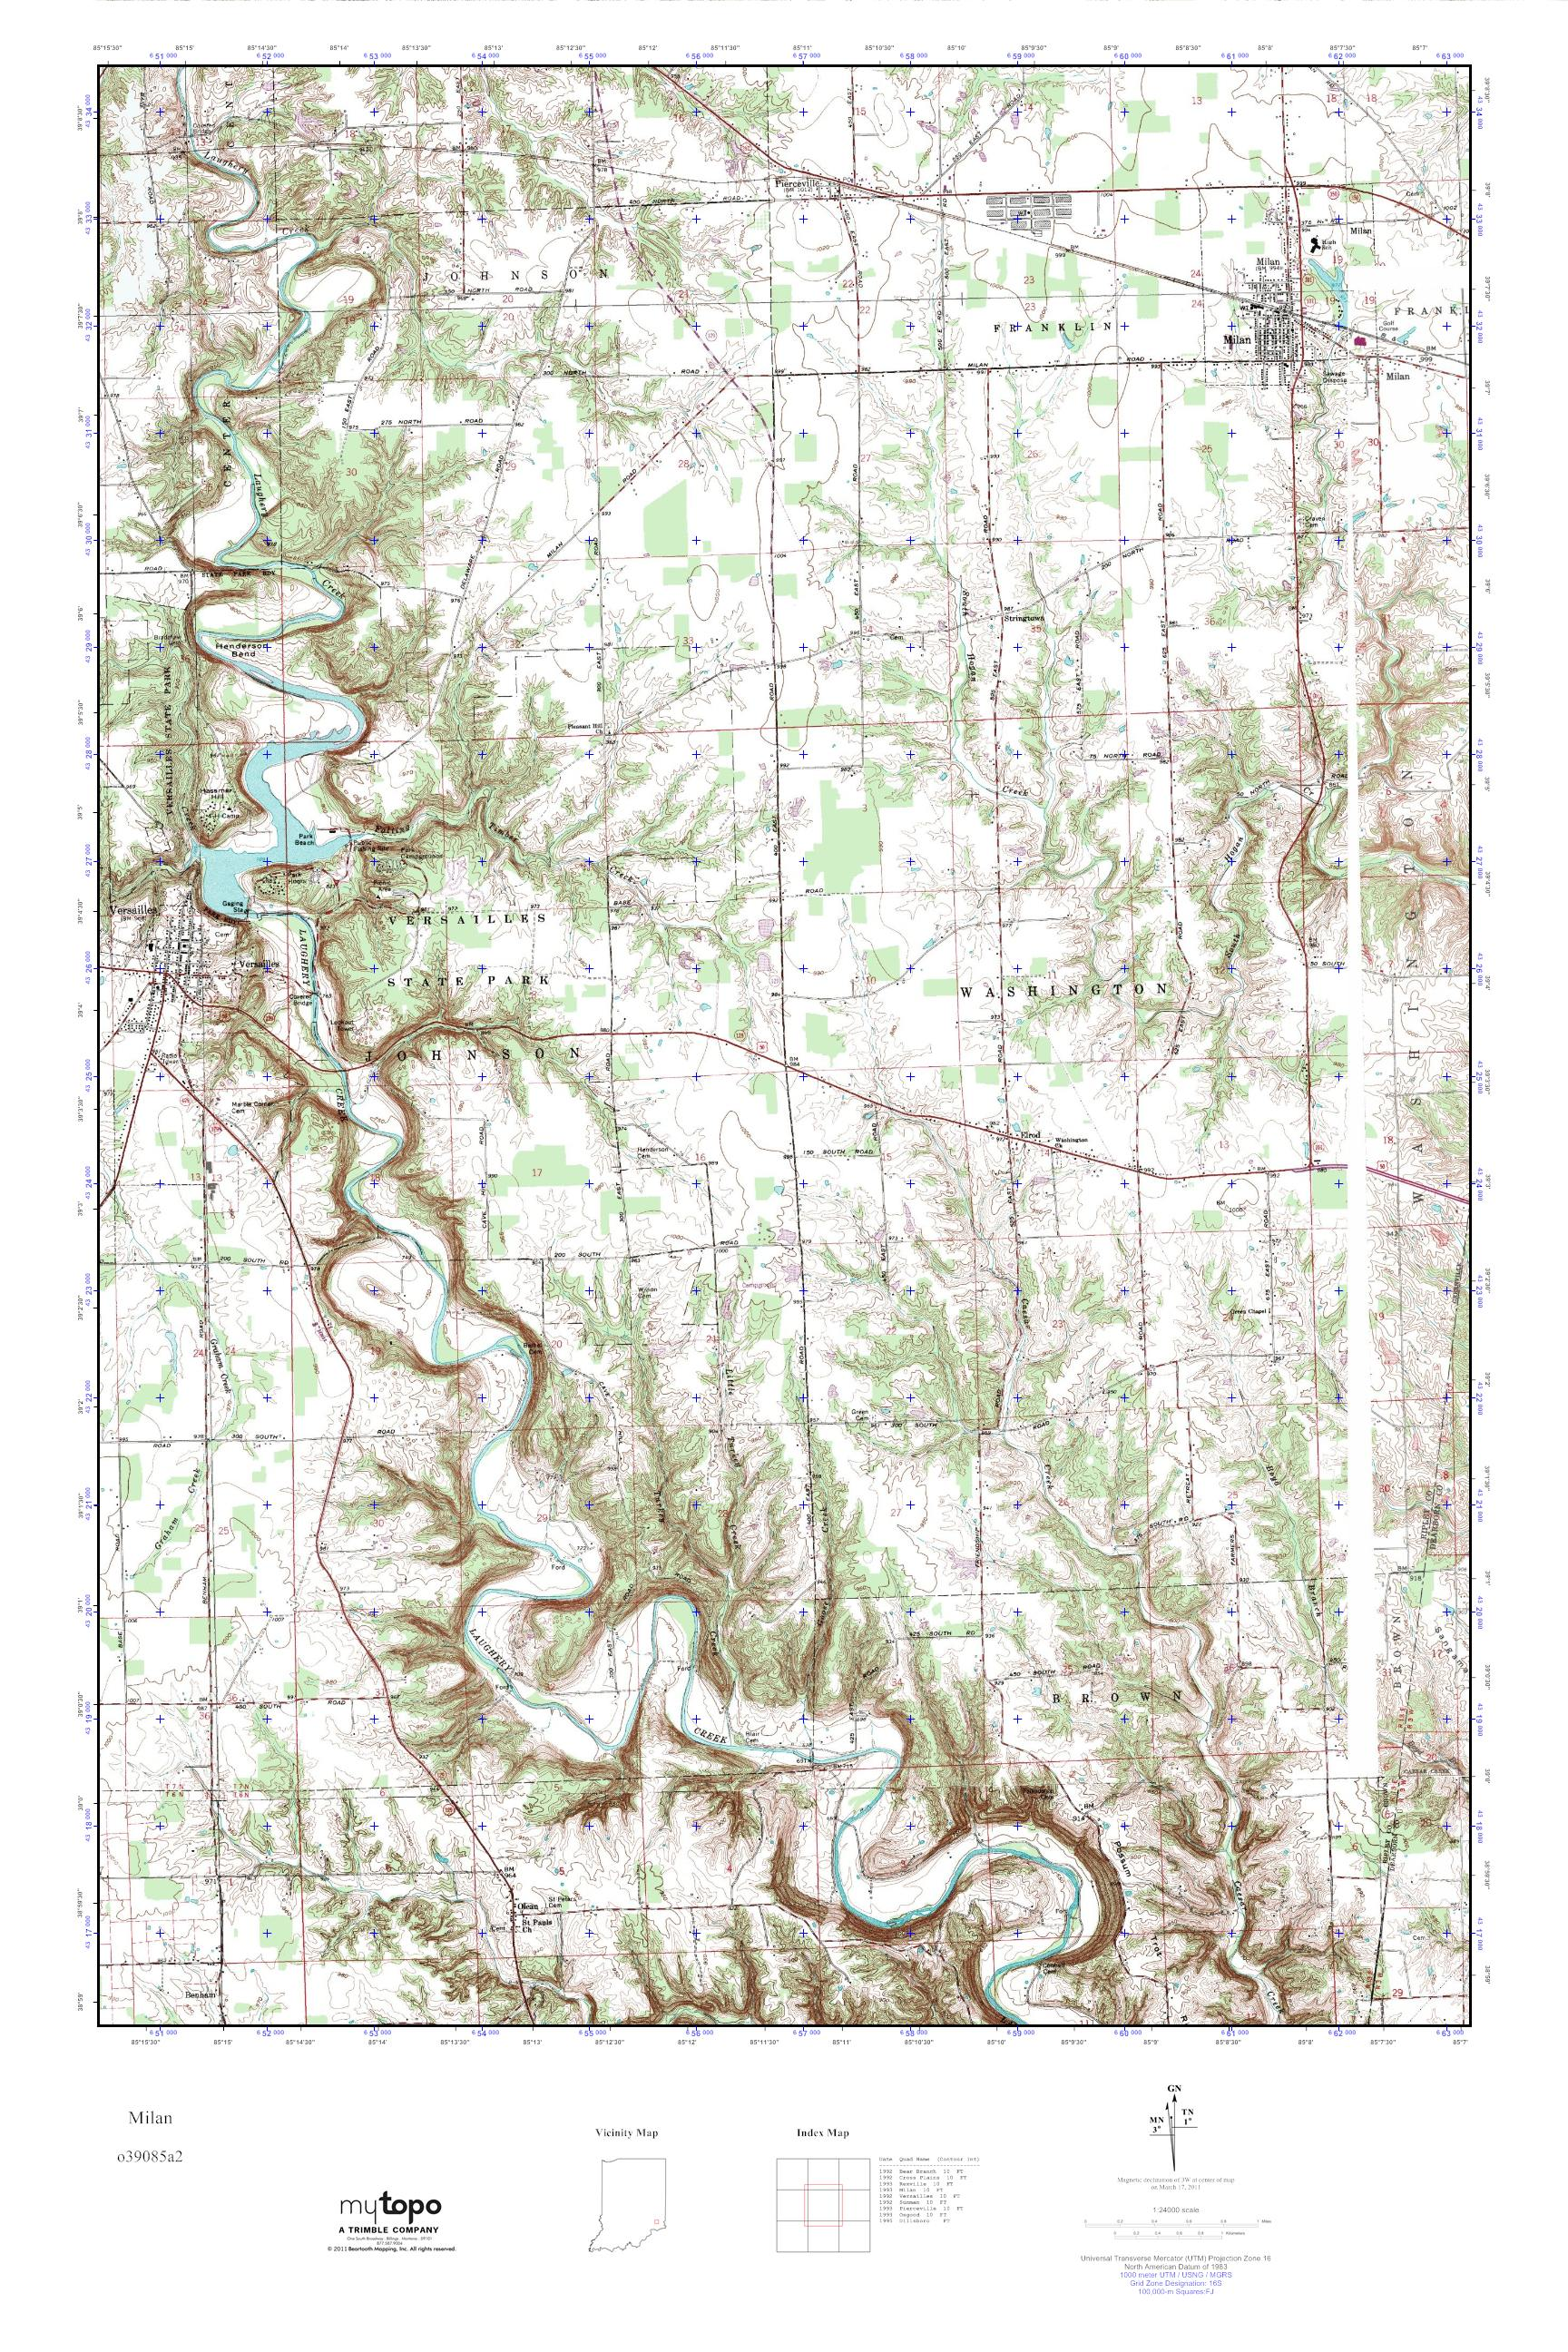 Milan Indiana Map.Mytopo Milan Indiana Usgs Quad Topo Map